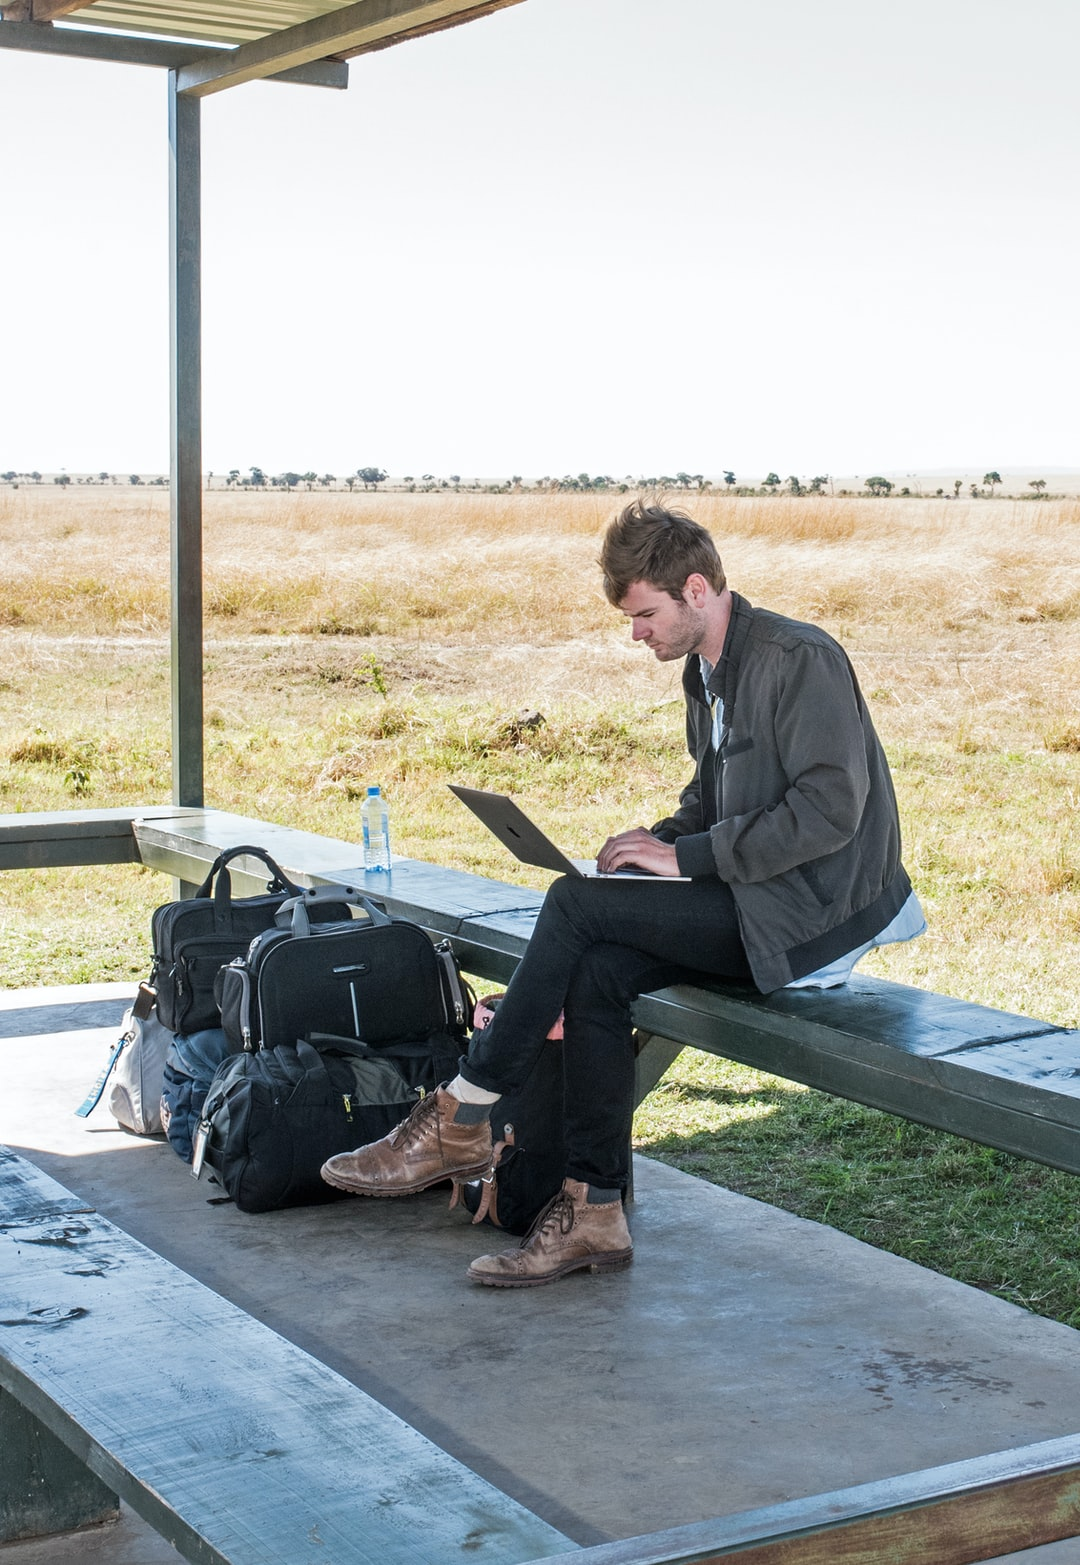 Digital addiction. A problem for many of us. While waiting for a light plane in the Masai Mara in Kenya, a man is totally engrossed in his laptop, while in real life, a lioness has made a kill a mere 100 metres from this spot.